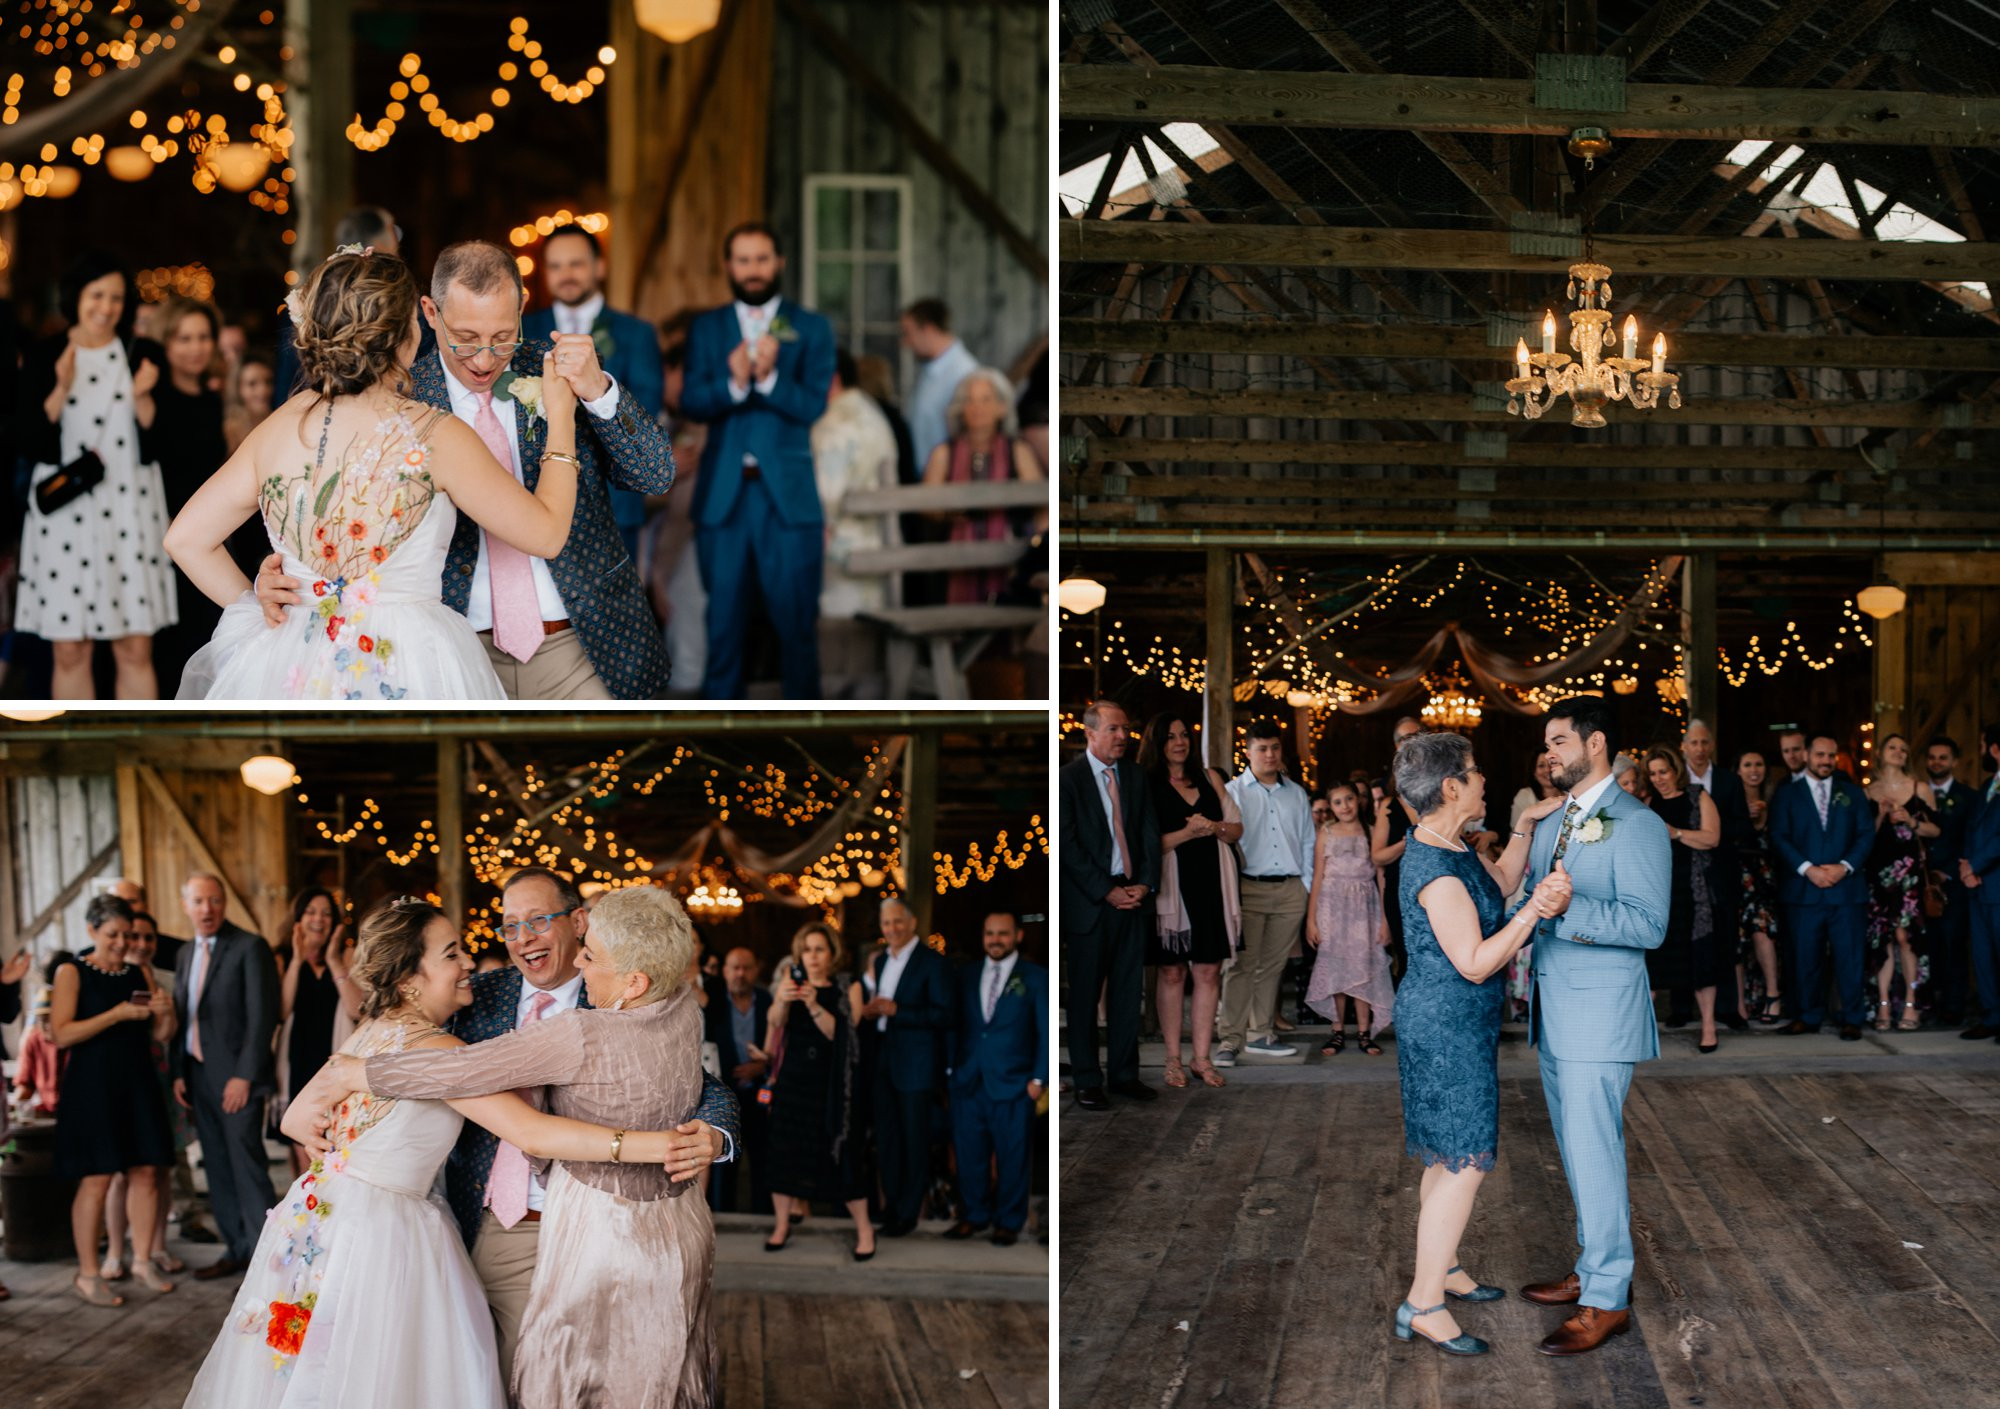 Fiddle Lake Farm Philadelphia Pennsylvania Misty Rustic Wedding with Lush Florals Parent Dances